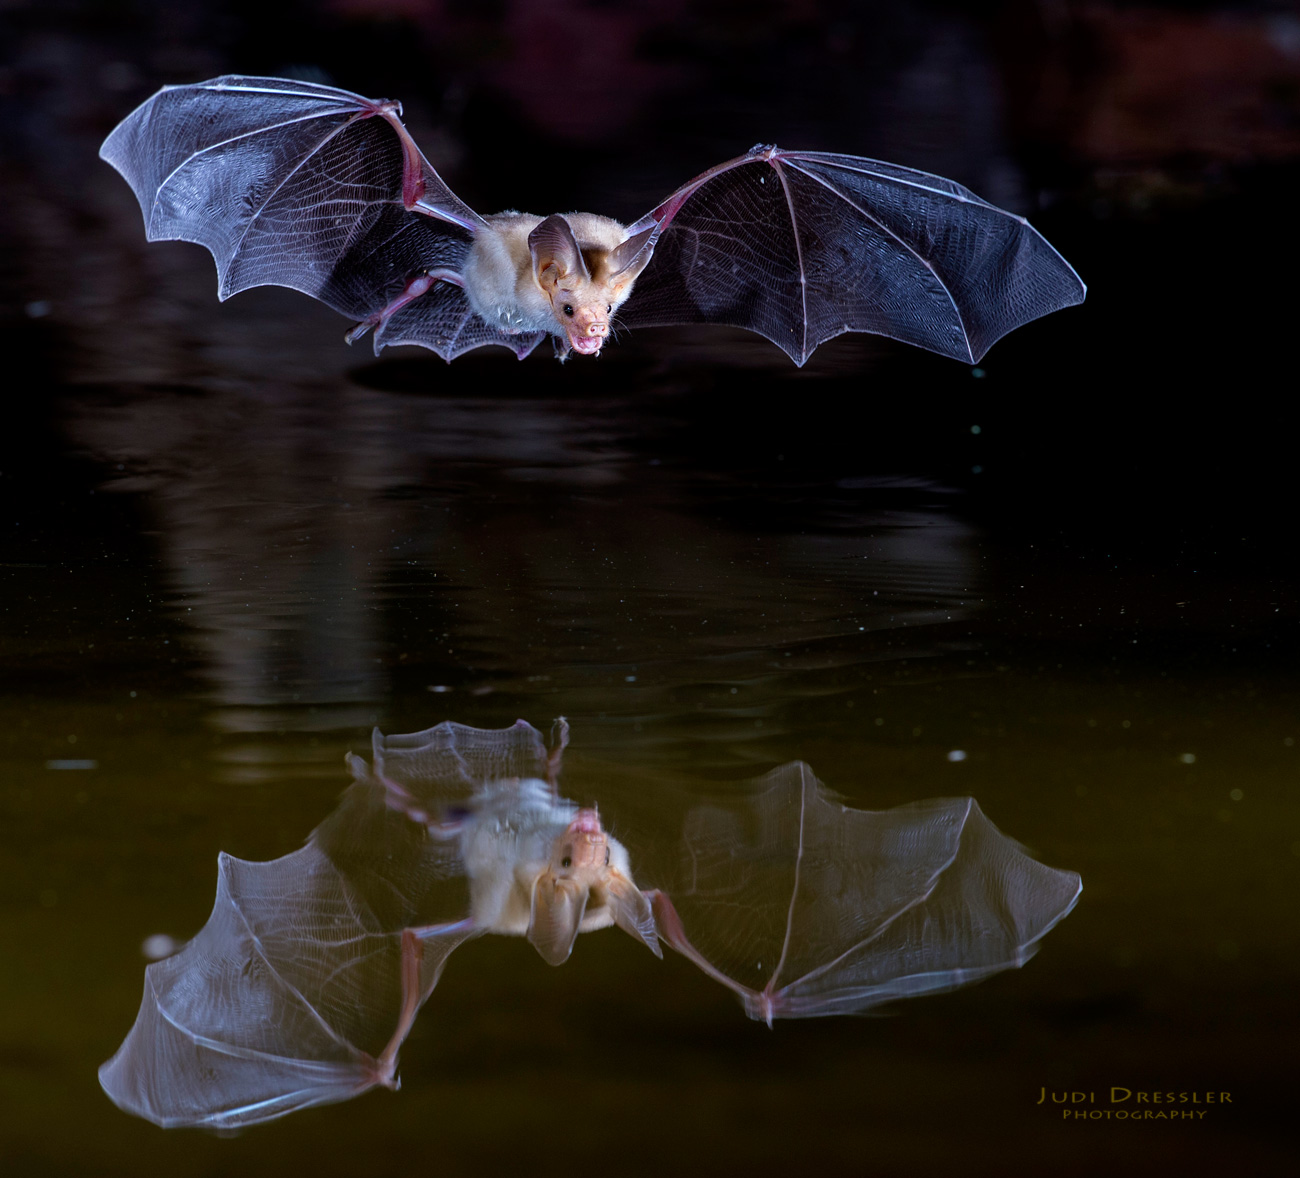 Bat Flying Over Pond